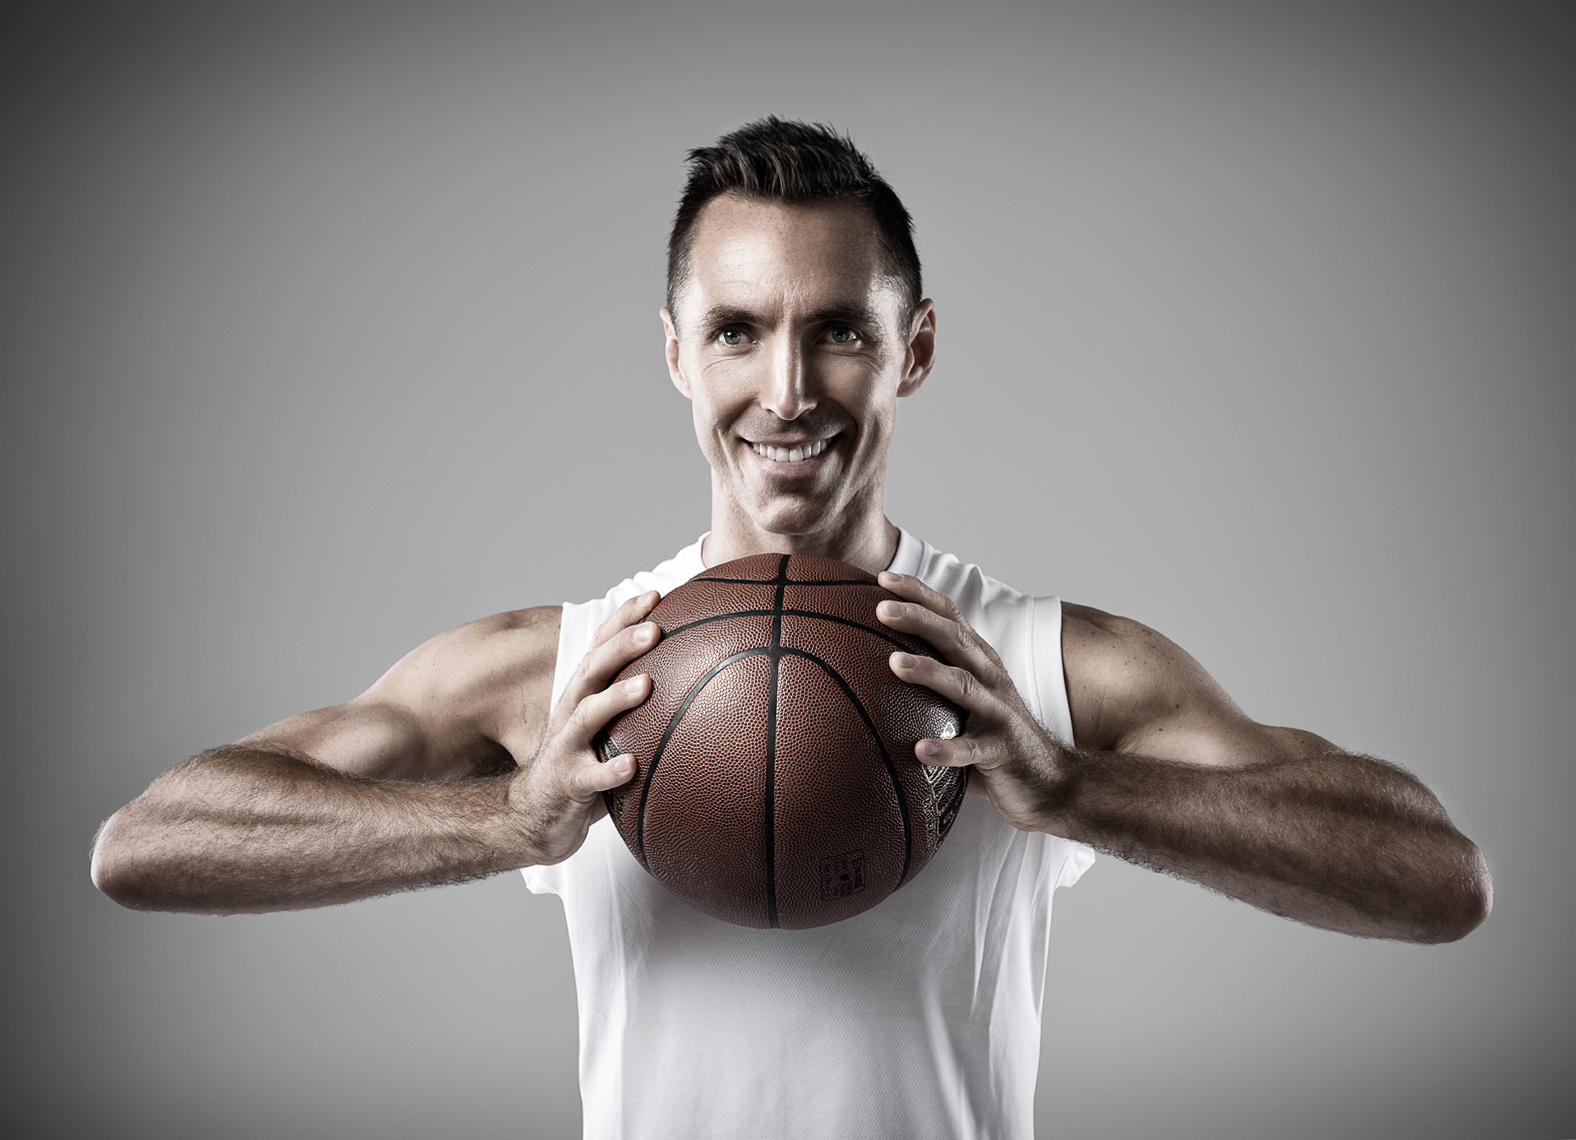 2017-Vancouver-Celebrity-Photographer-ErichSaide-SteveNash-SportsandFitness-Basketball